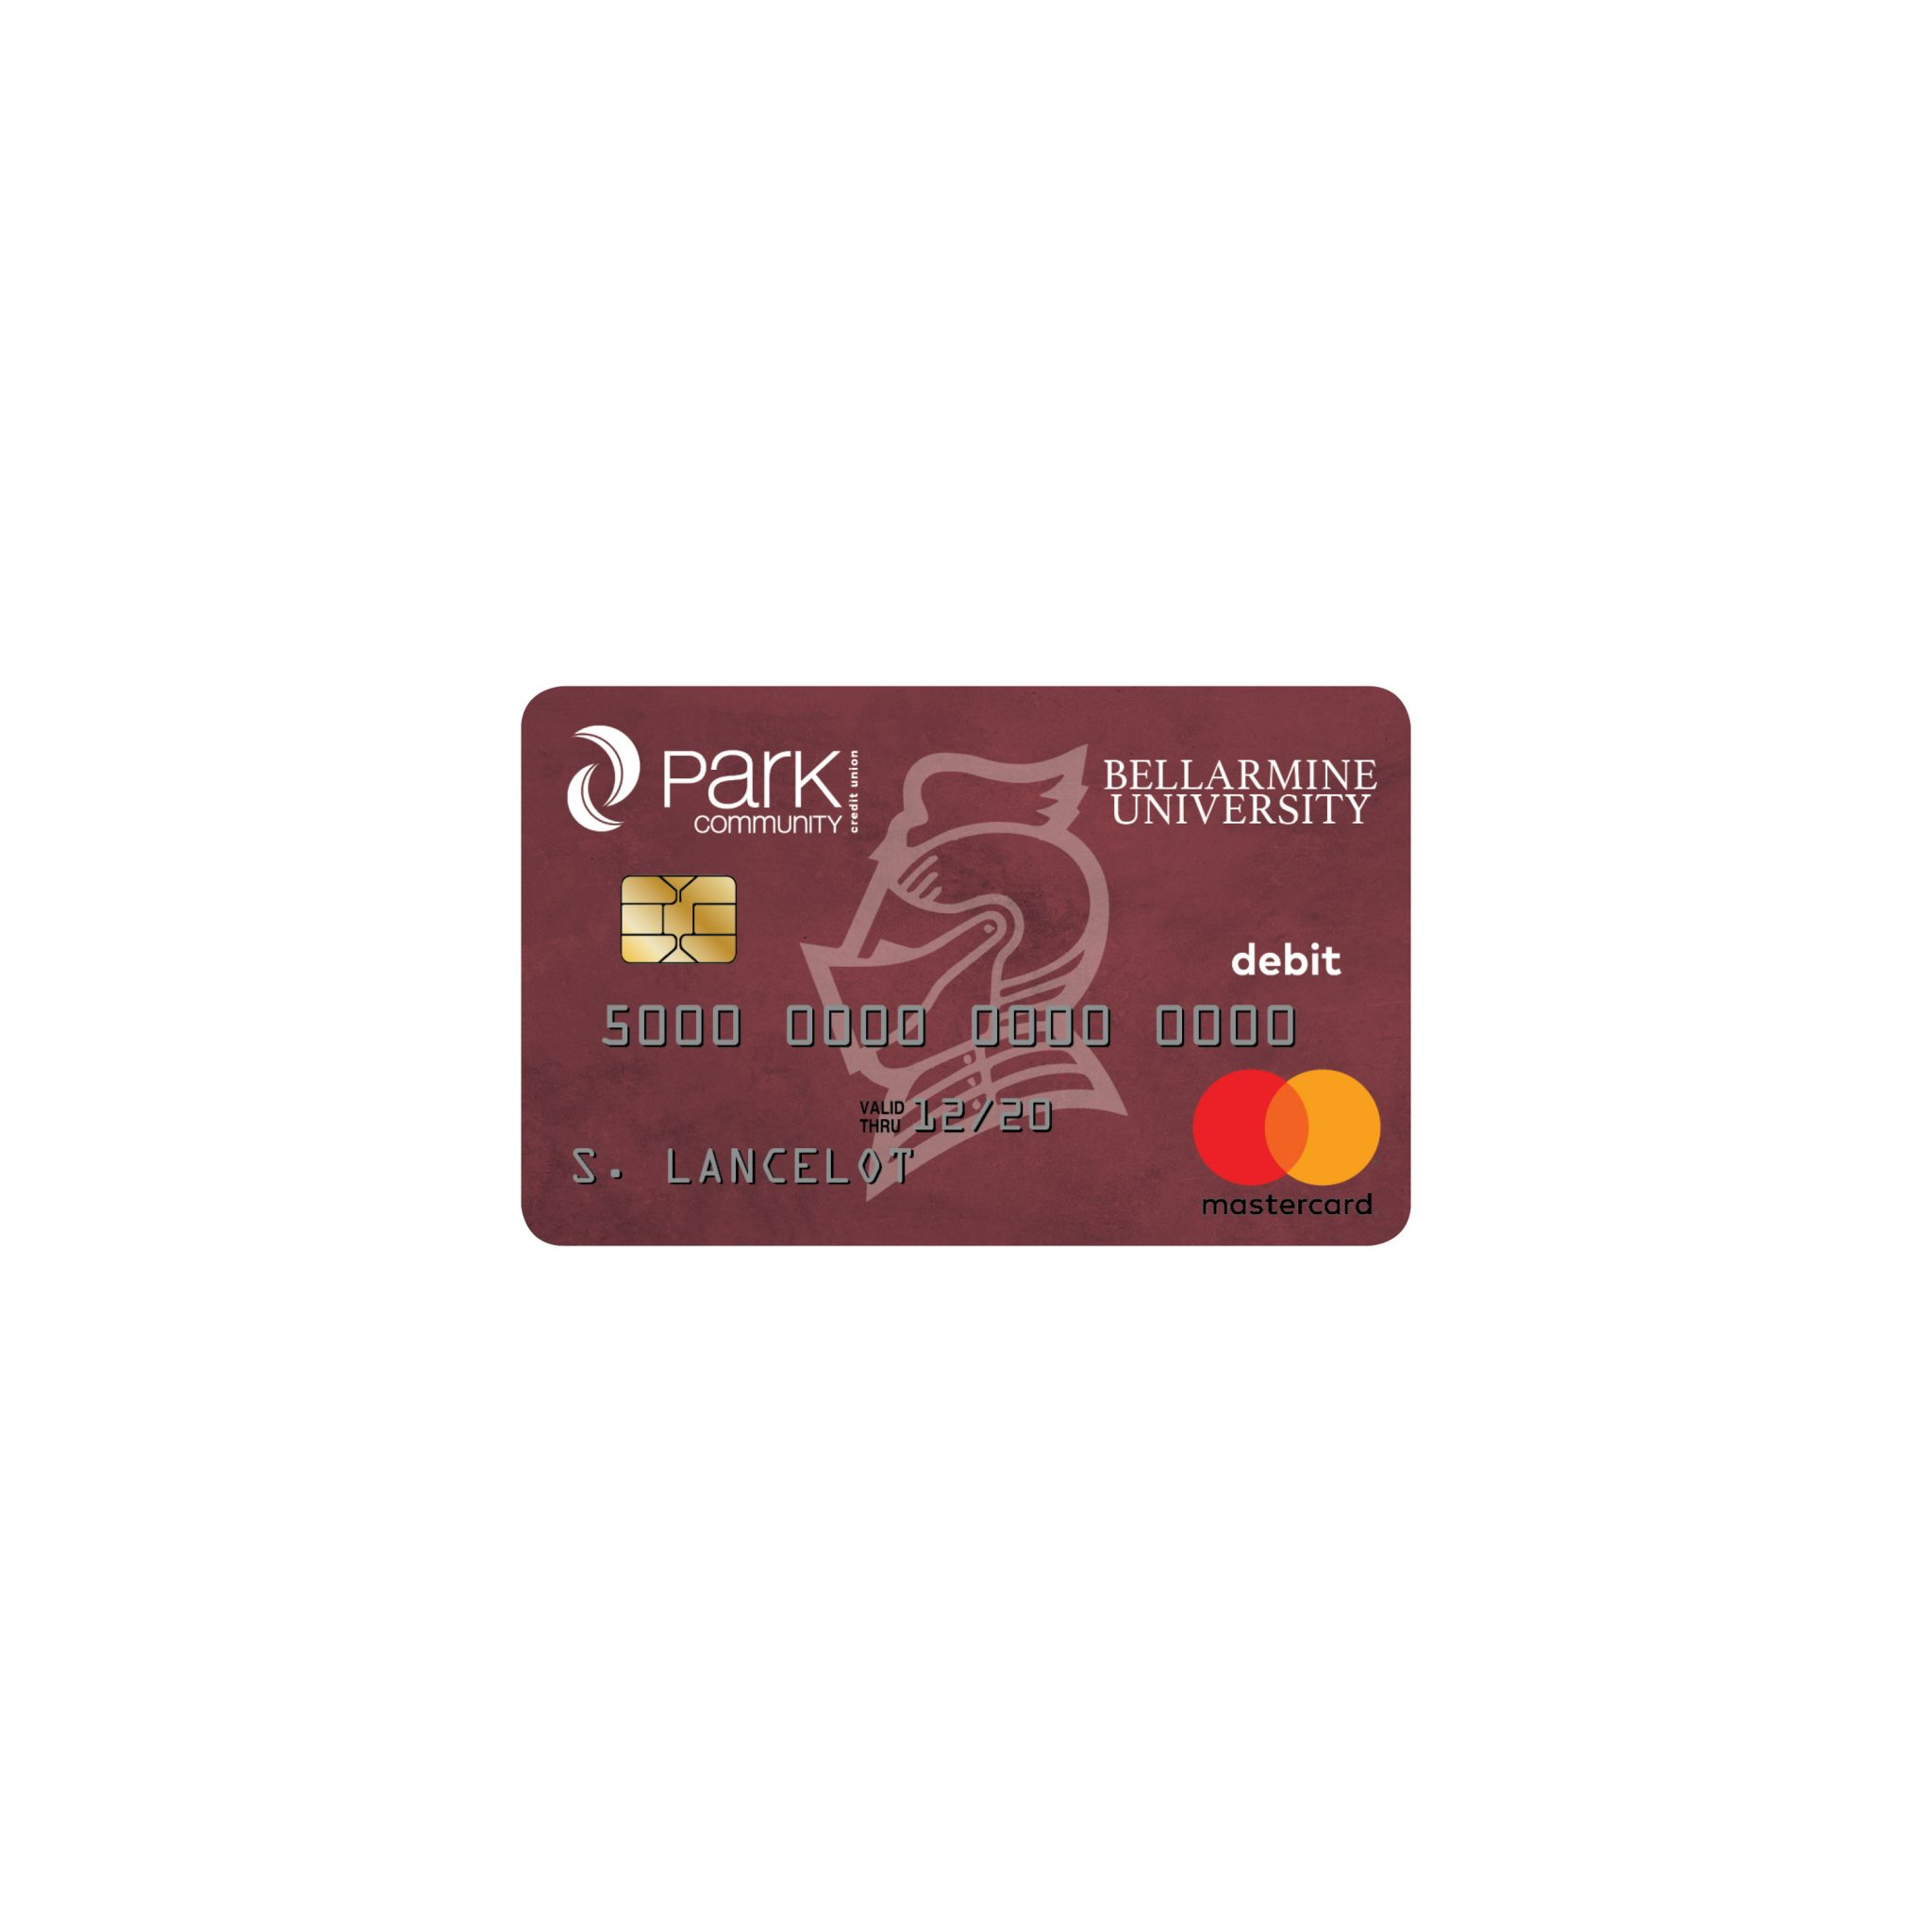 Illustration of cobranded Bellarmine university debit card design